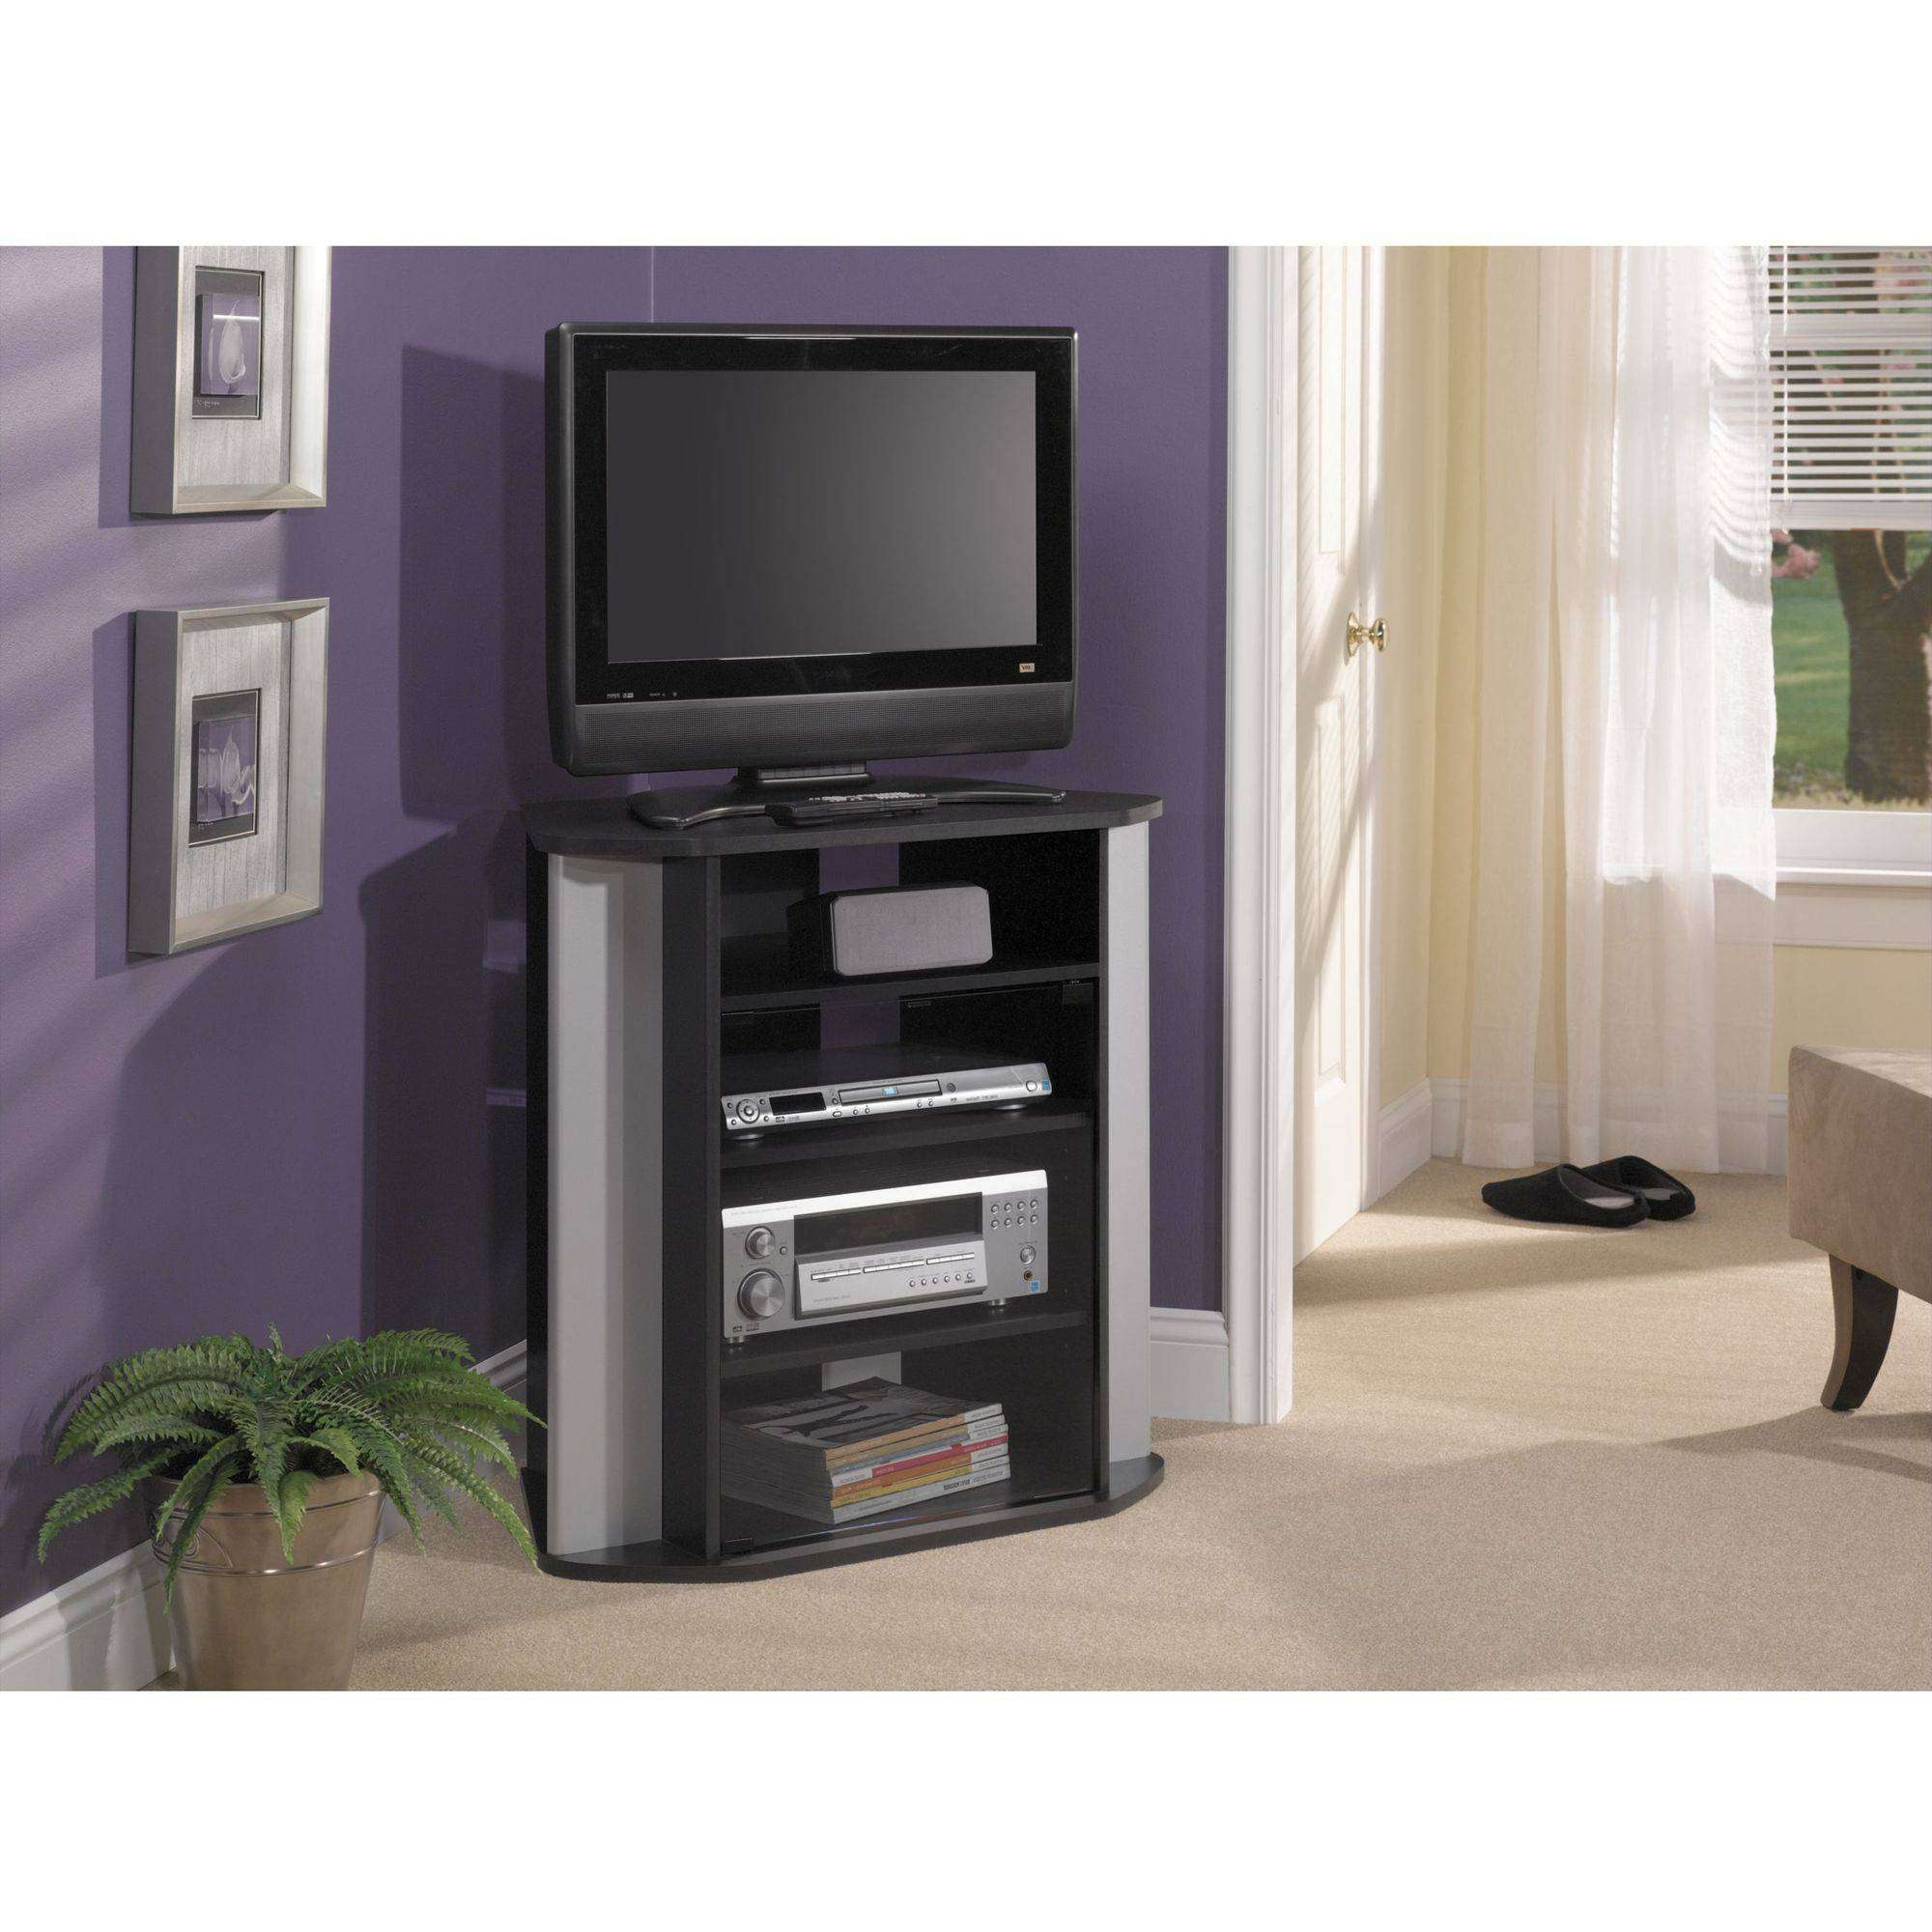 Bush Visions Black Tall Corner Tv Stand, For Tvs Up To 37 Inside Tall Black Tv Cabinets (View 5 of 20)